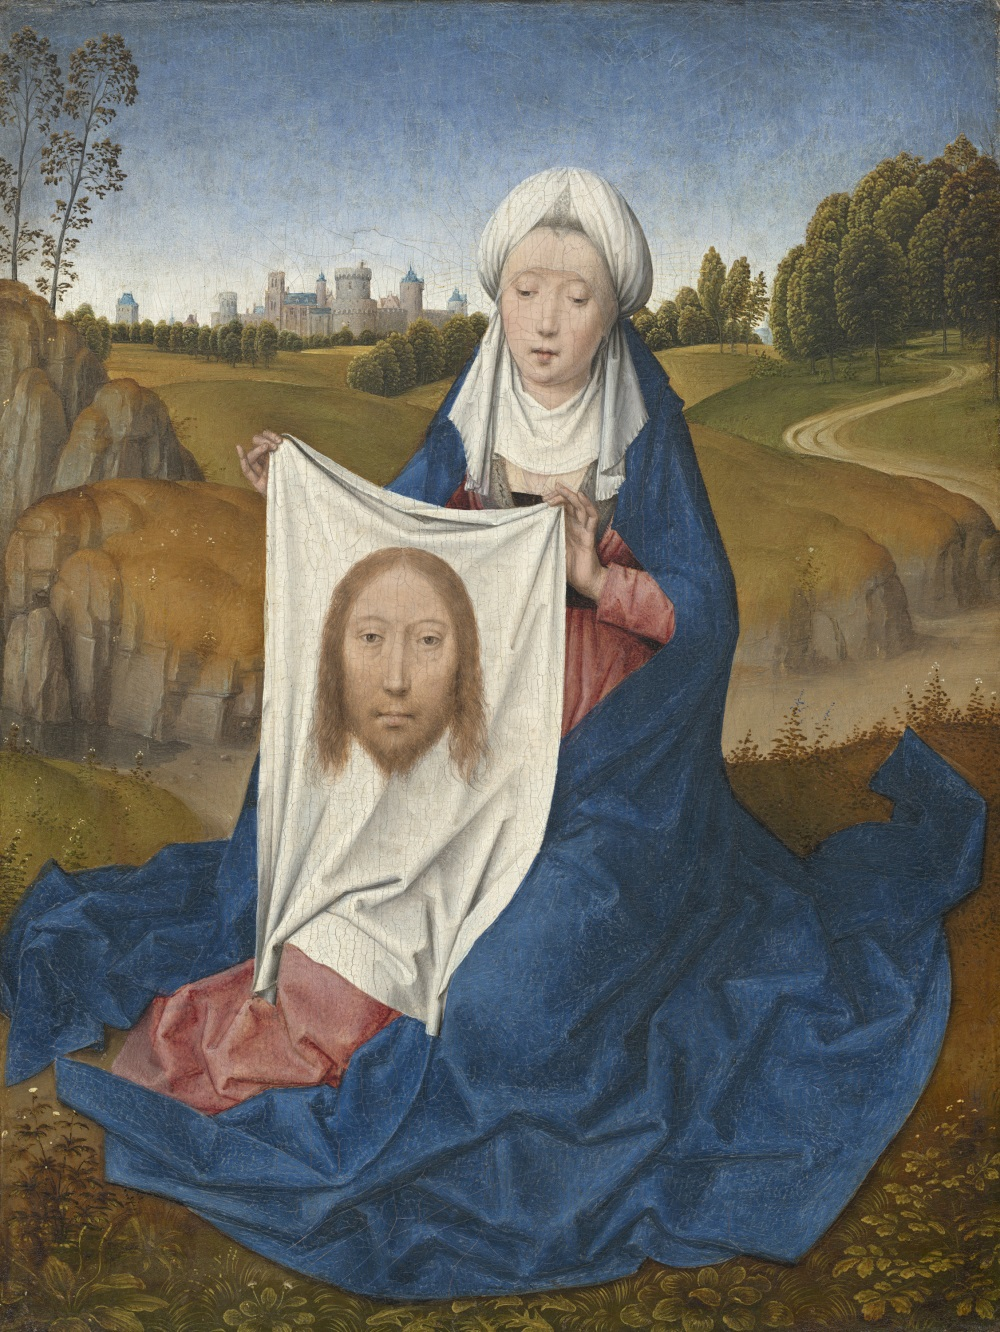 Hans Memling, Saint Veronica, 1470-75. Collection of the National Gallery of Art.